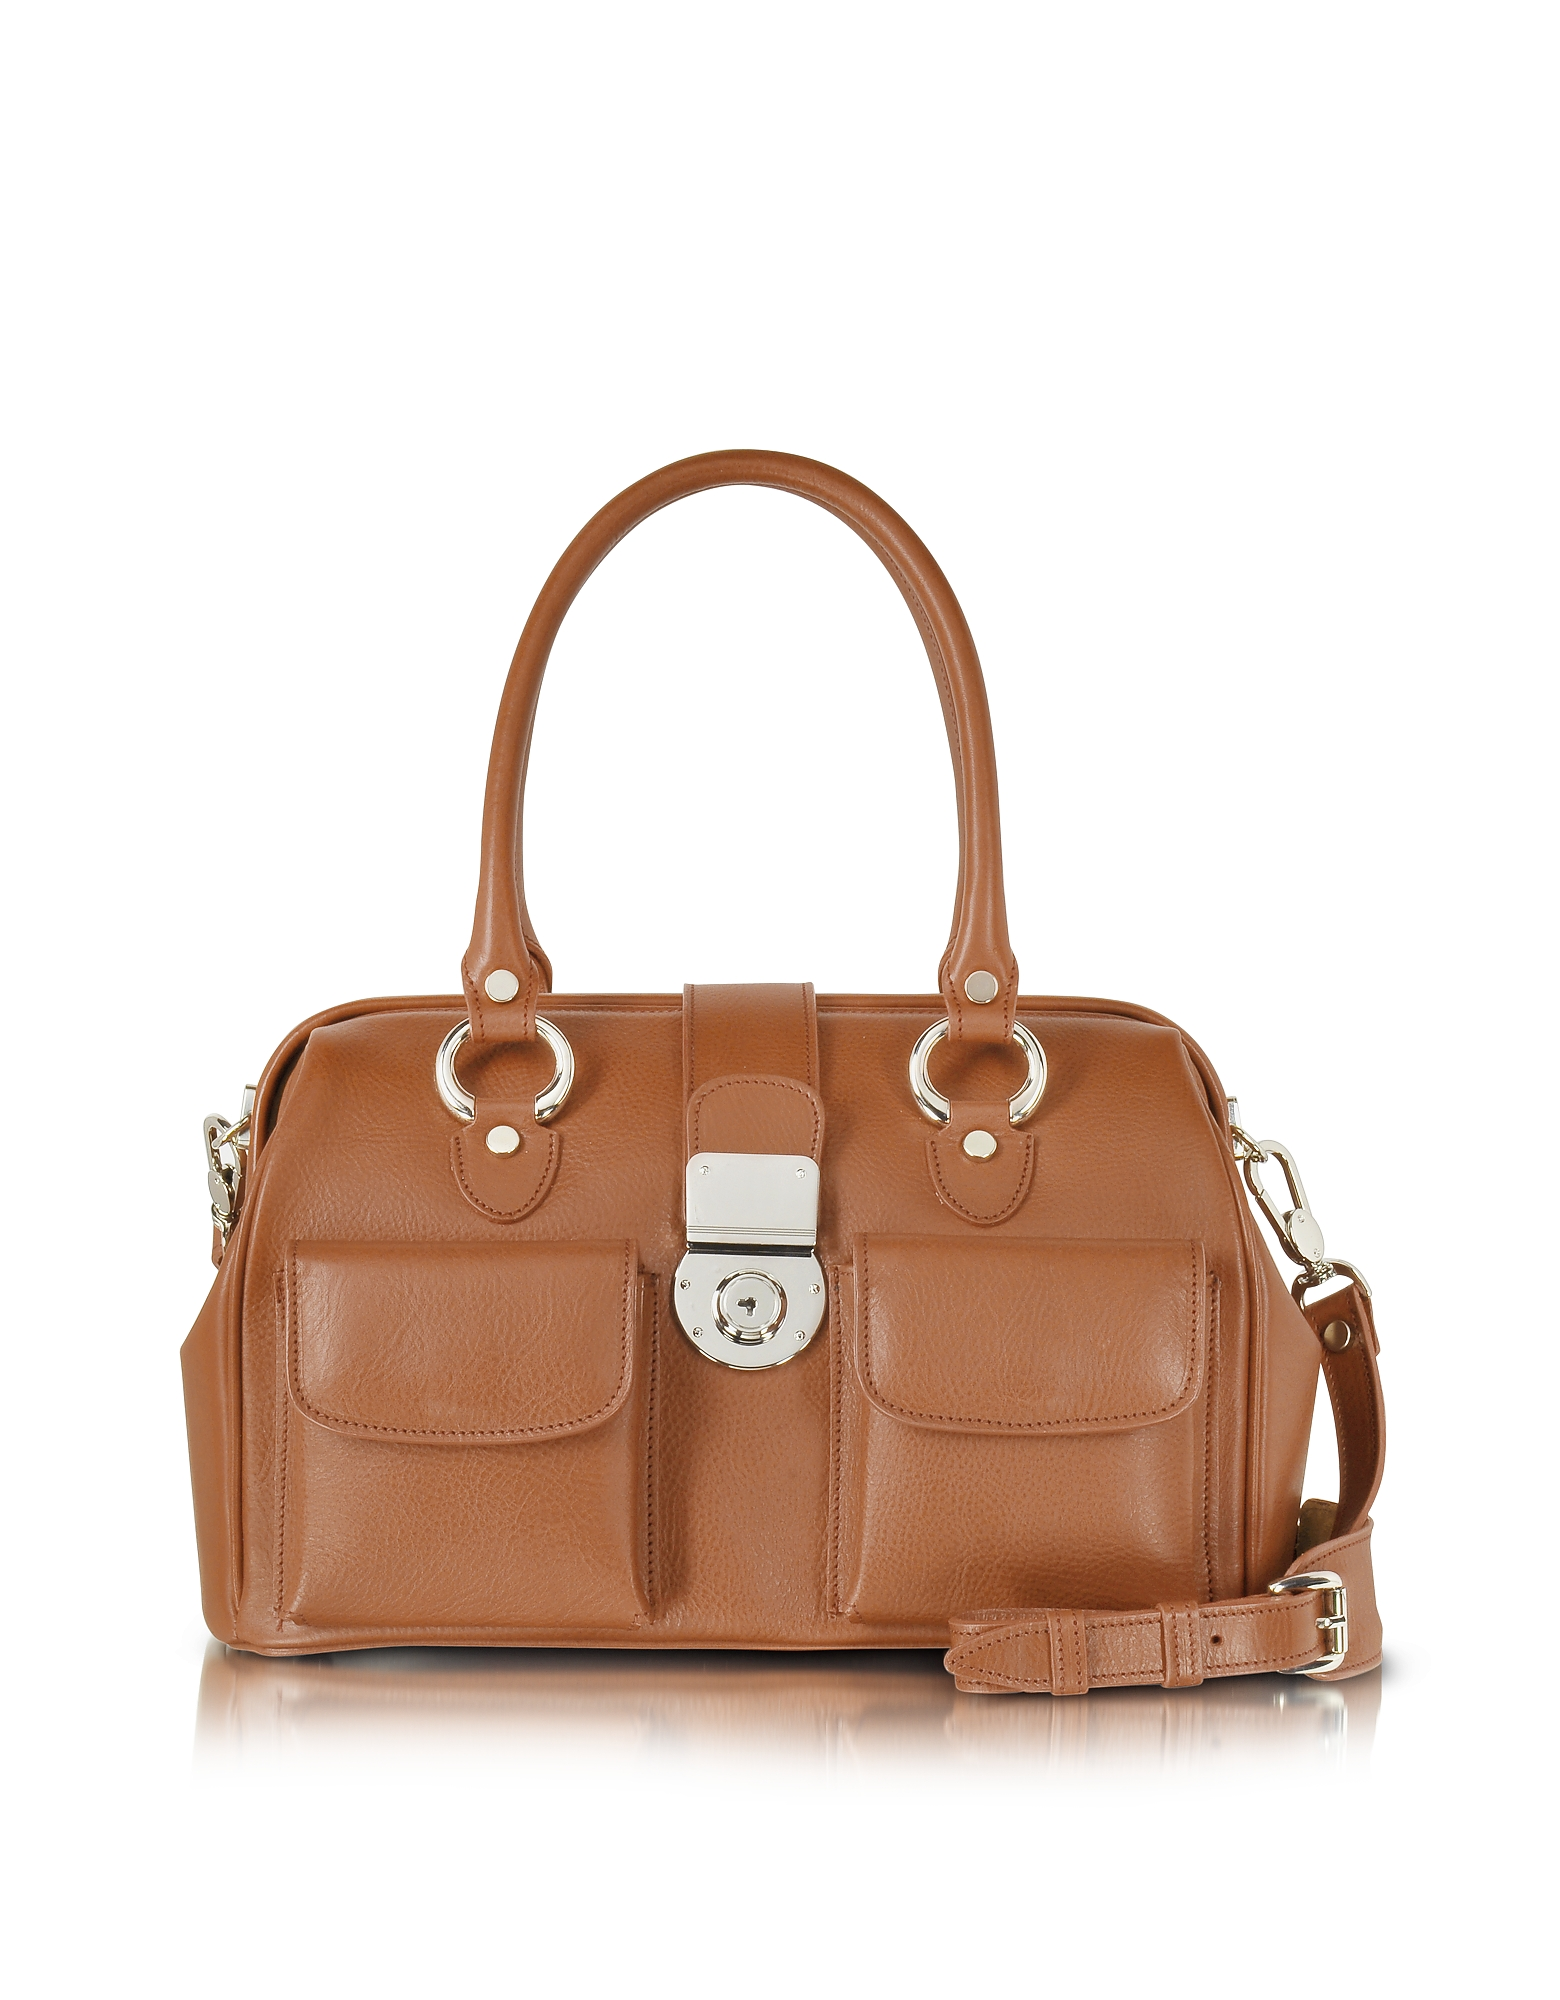 For a polished edge to your look, this structured doctor style leather handbag is roomy enough to ho